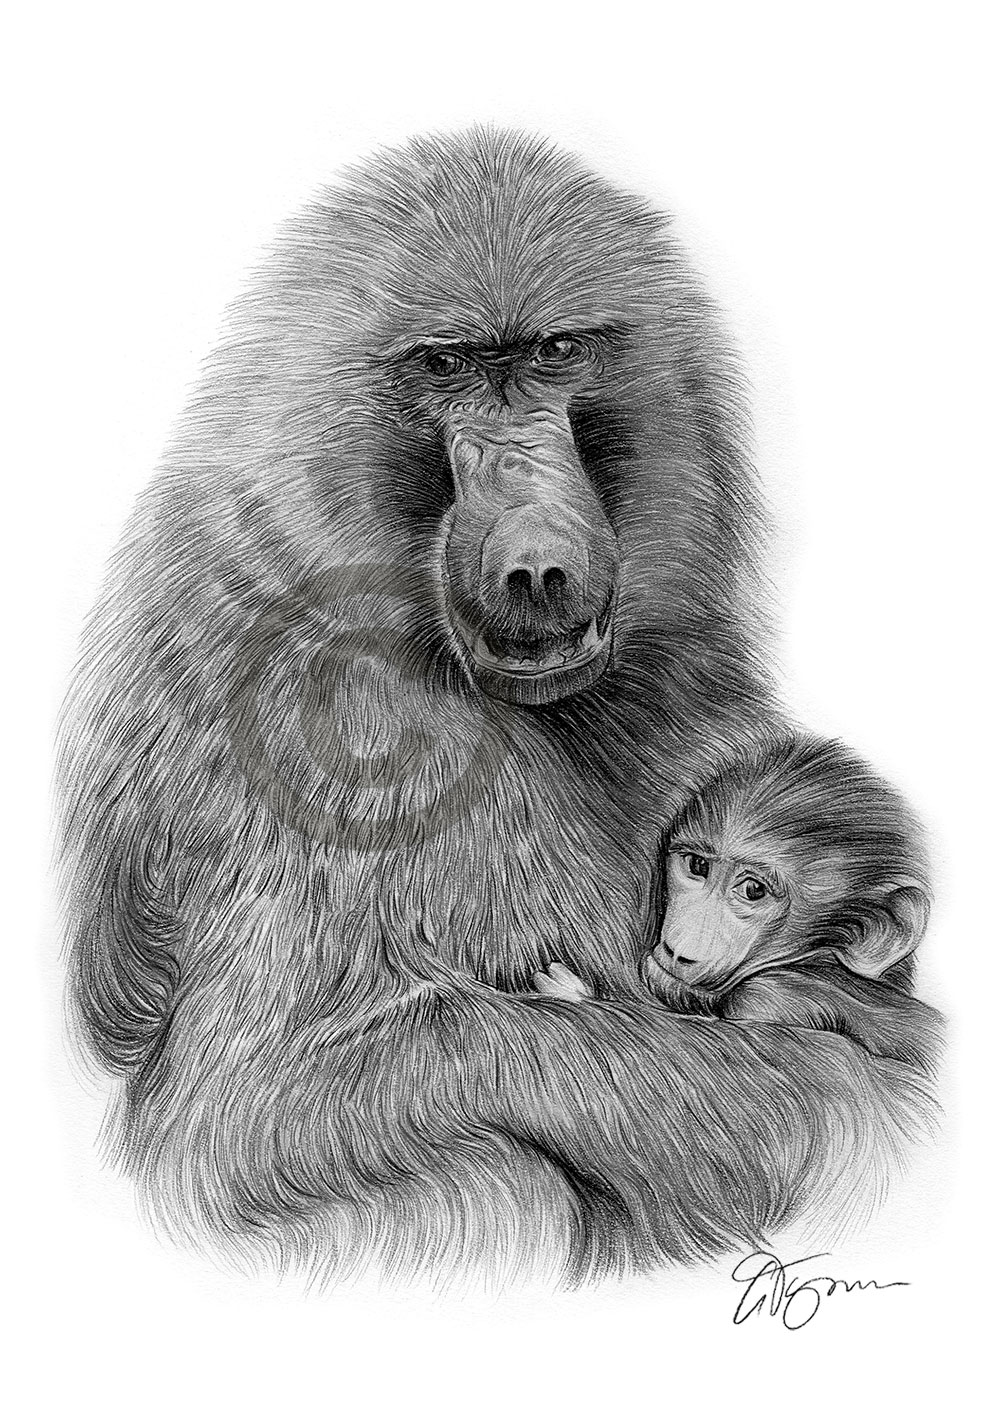 Baboon and baby pencil drawing by artist Gary Tymon